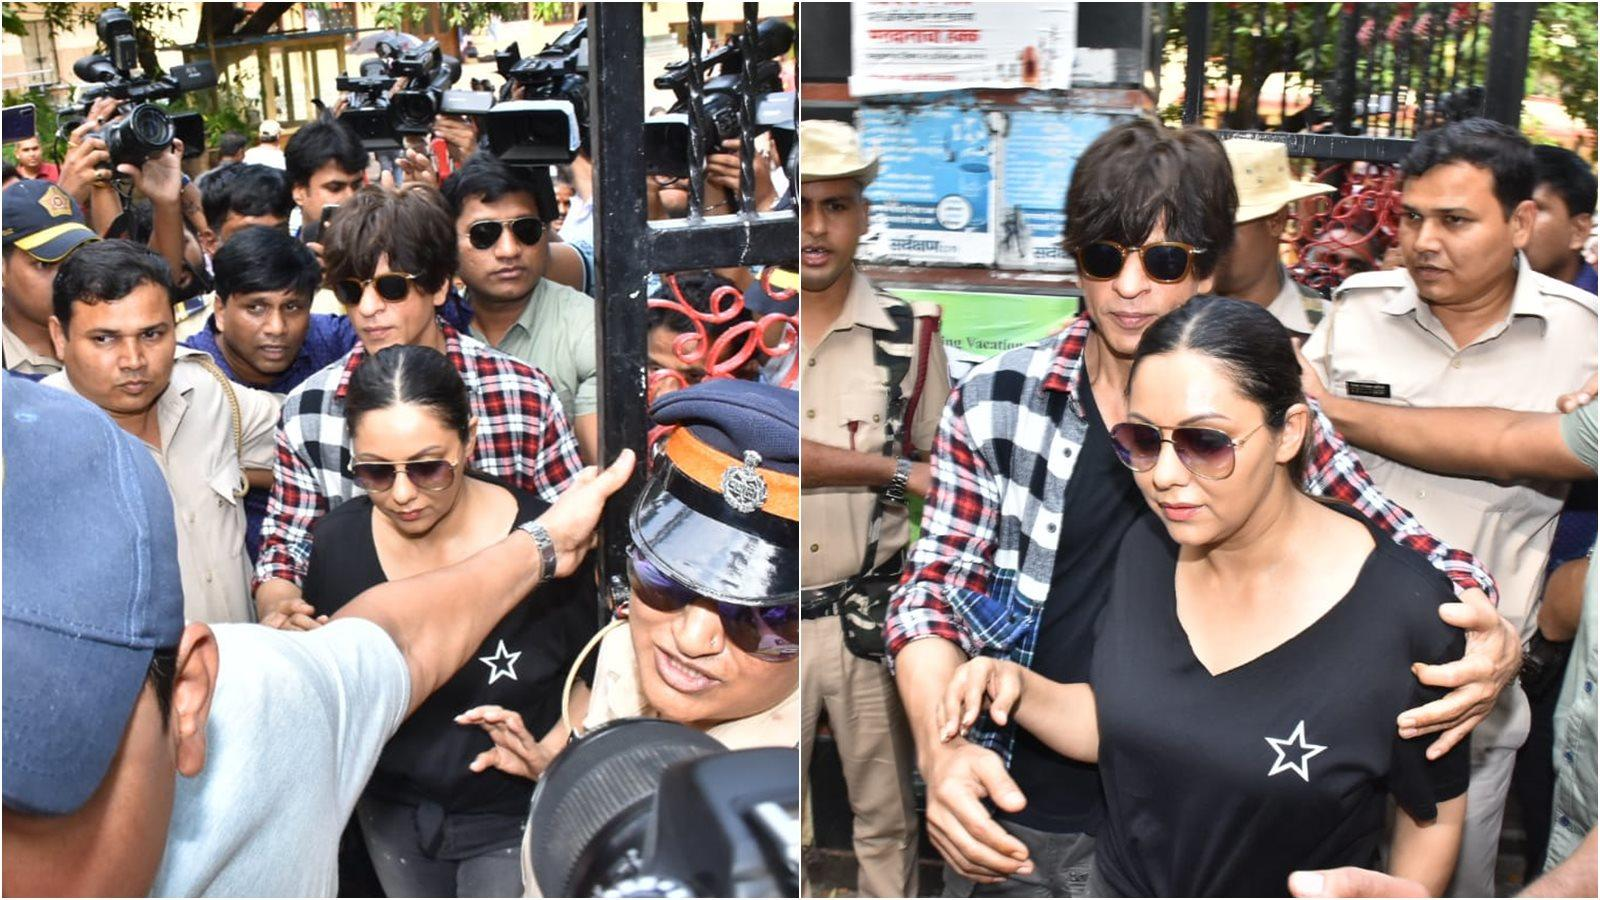 shah-rukh-khan-turns-bodyguard-for-wife-gauri-khan-as-they-get-mobbed-outside-polling-booth